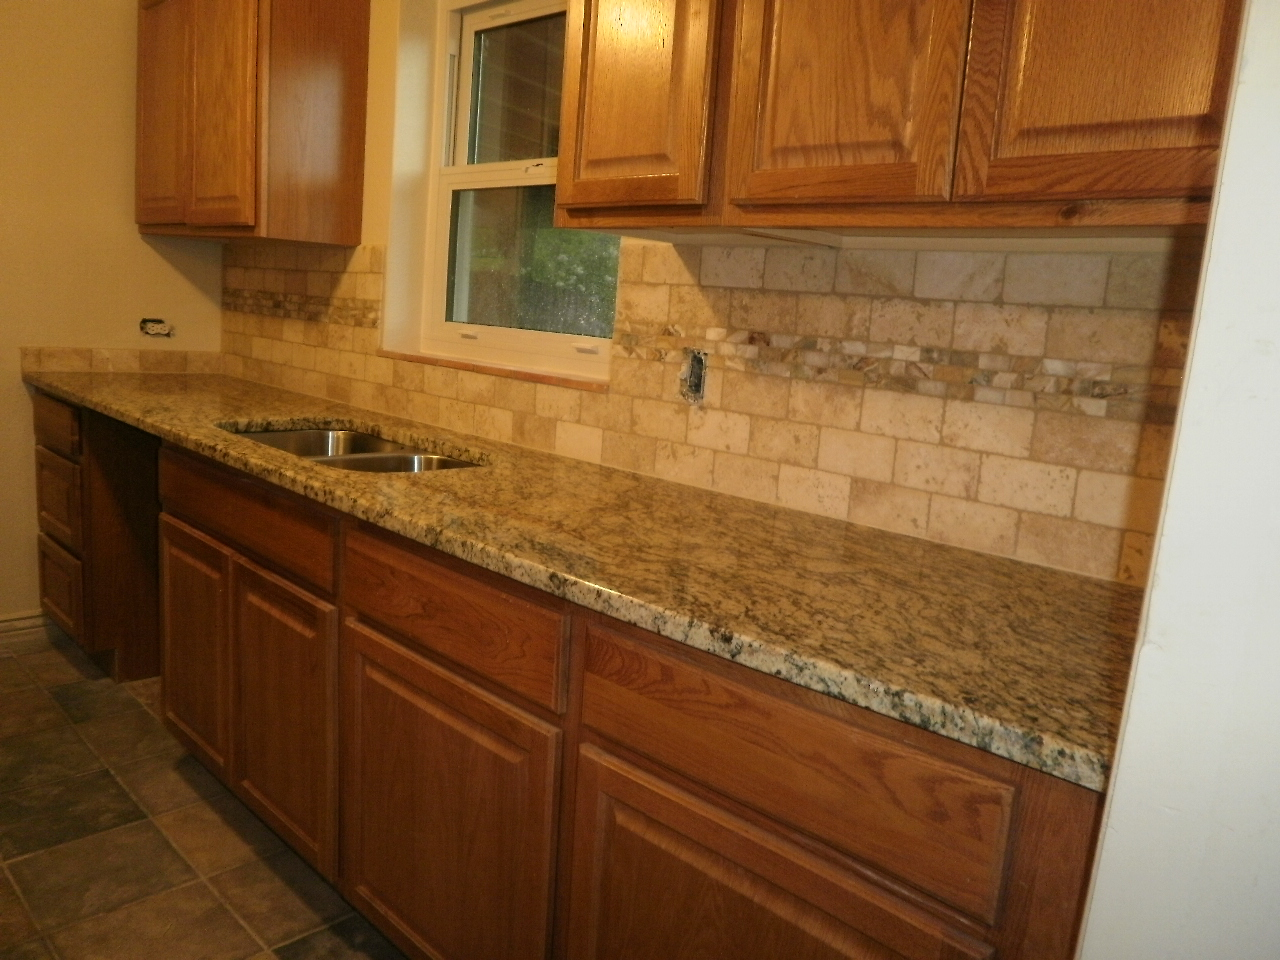 Santa cecilia granite backsplash ideas for Best kitchen backsplash ideas